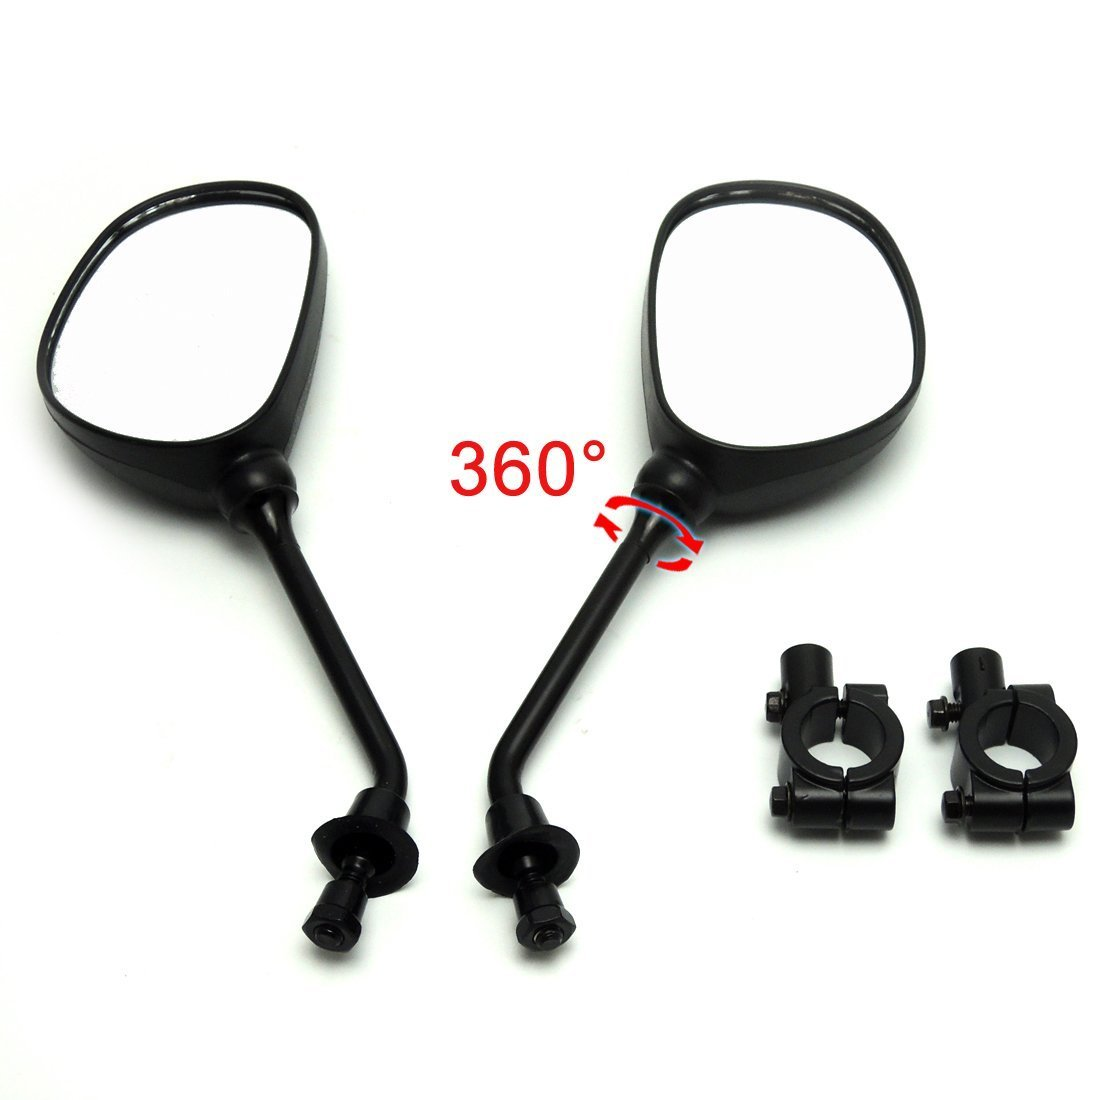 OKSTNO 360 Degree Rotation Rearview Mirror Bracket Holder Clamp w// 7//8 Handlebar Mount 8mm Adaptor for Polaris line of ATVs Dirt Motor Bike Cruiser Chopper